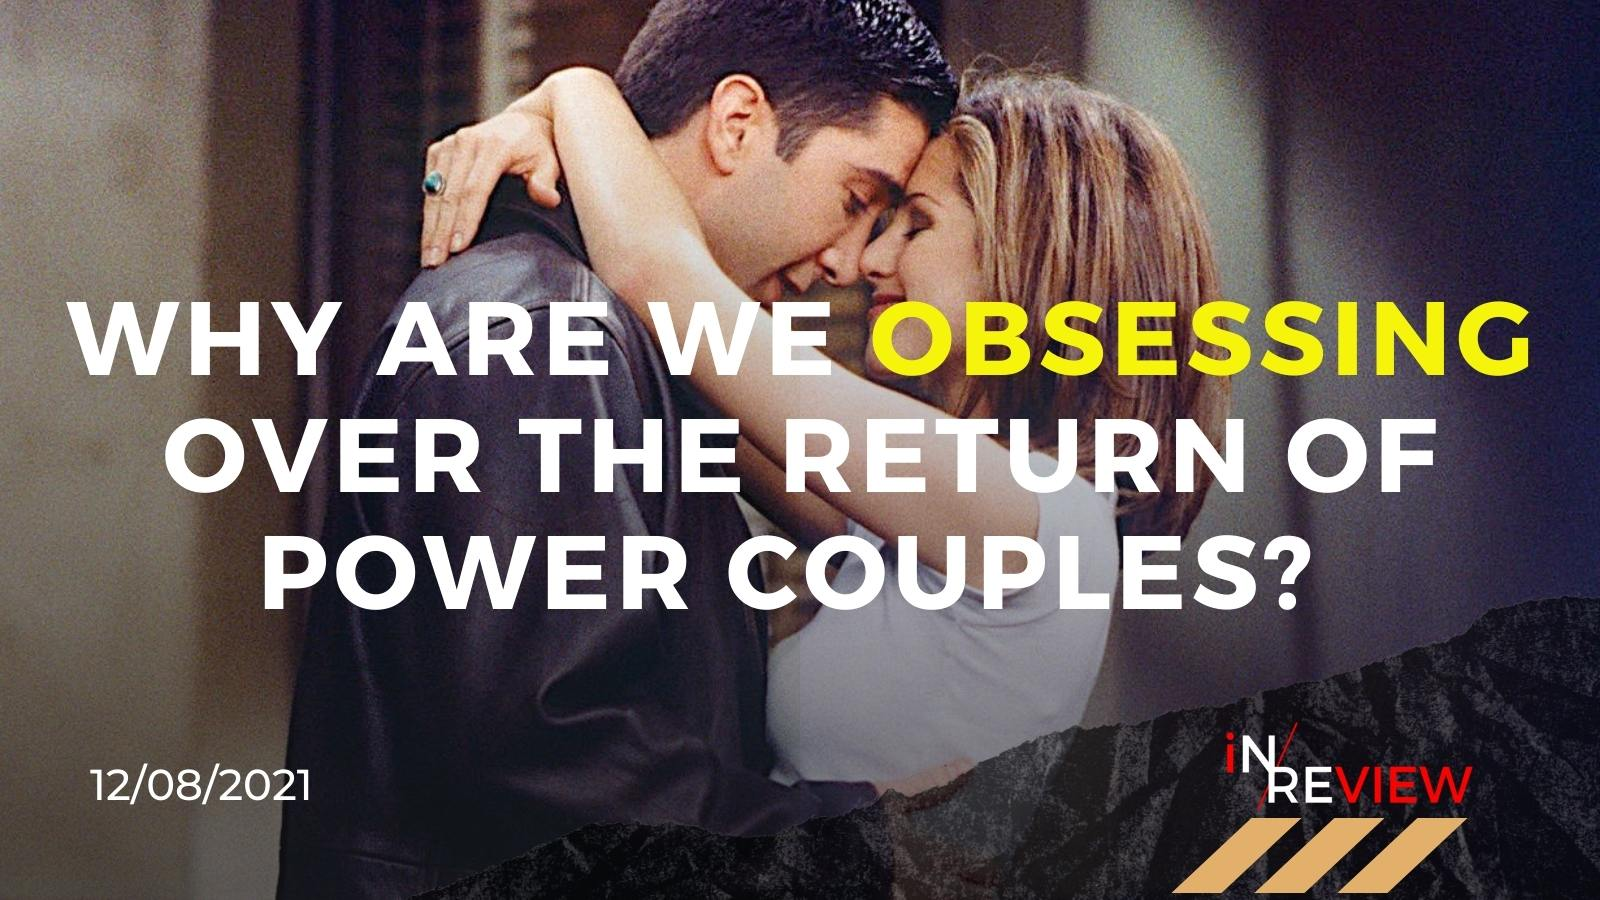 Celebrity Power Couples: Why Do We Care?